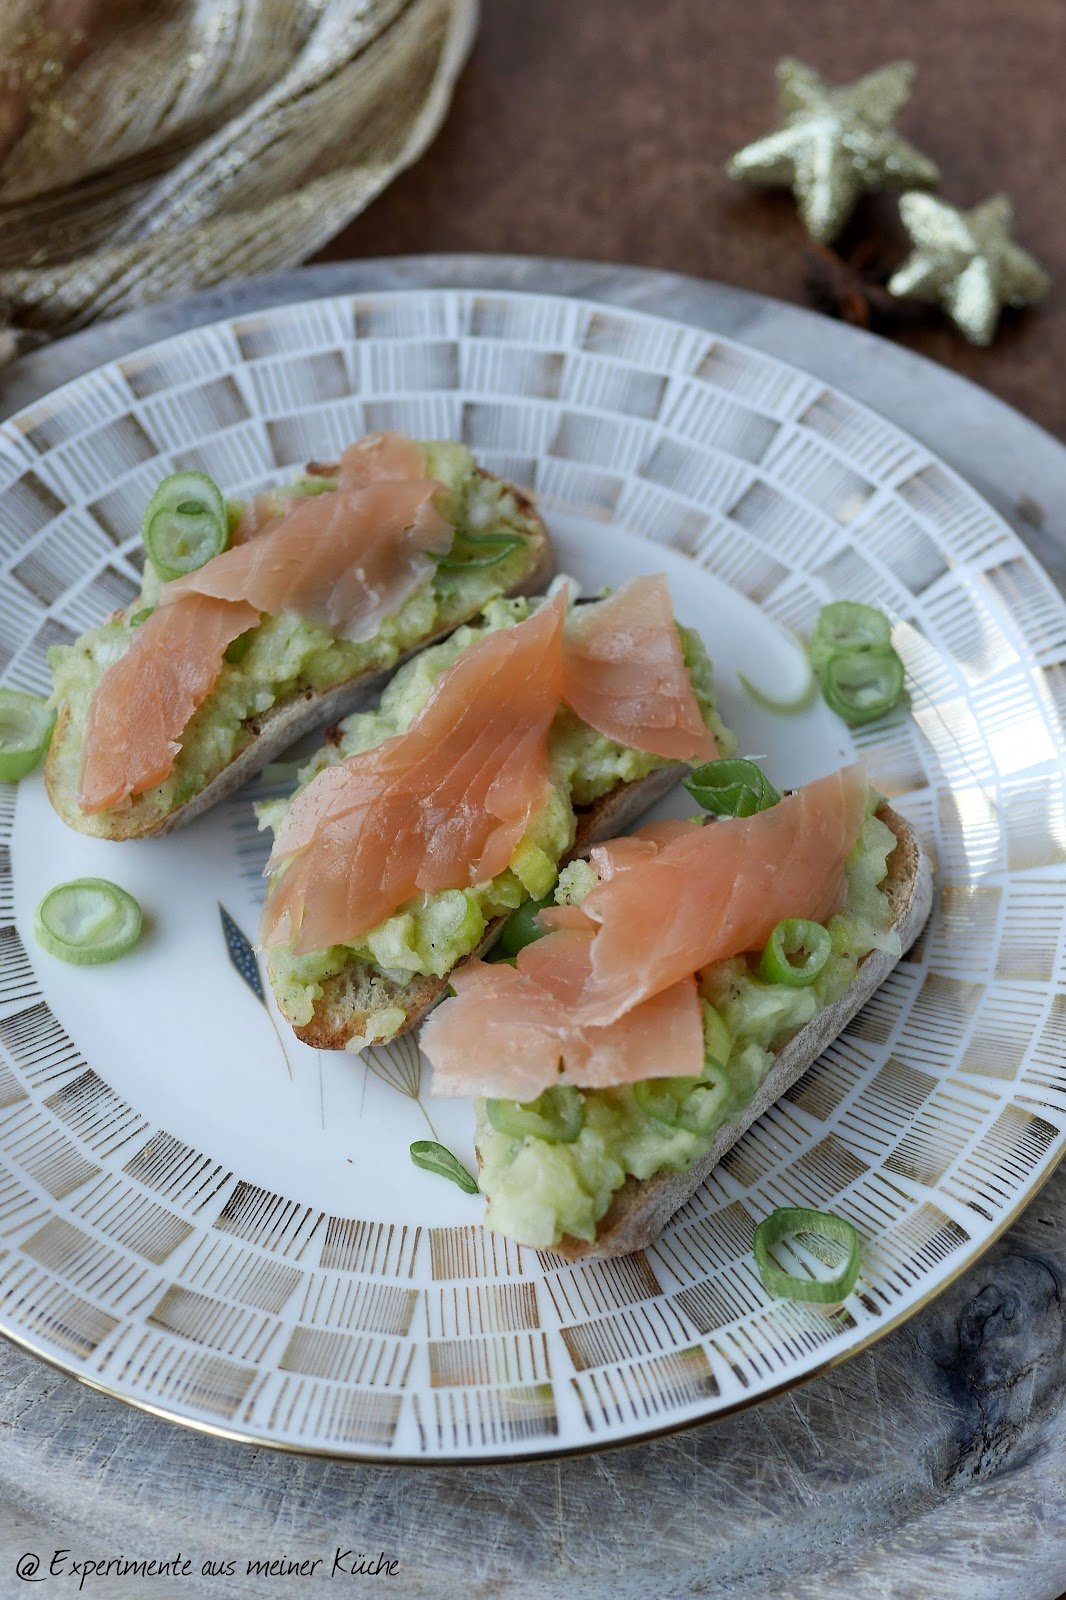 experimente aus meiner k che bruschetta mit avocado kartoffel creme und lachs. Black Bedroom Furniture Sets. Home Design Ideas